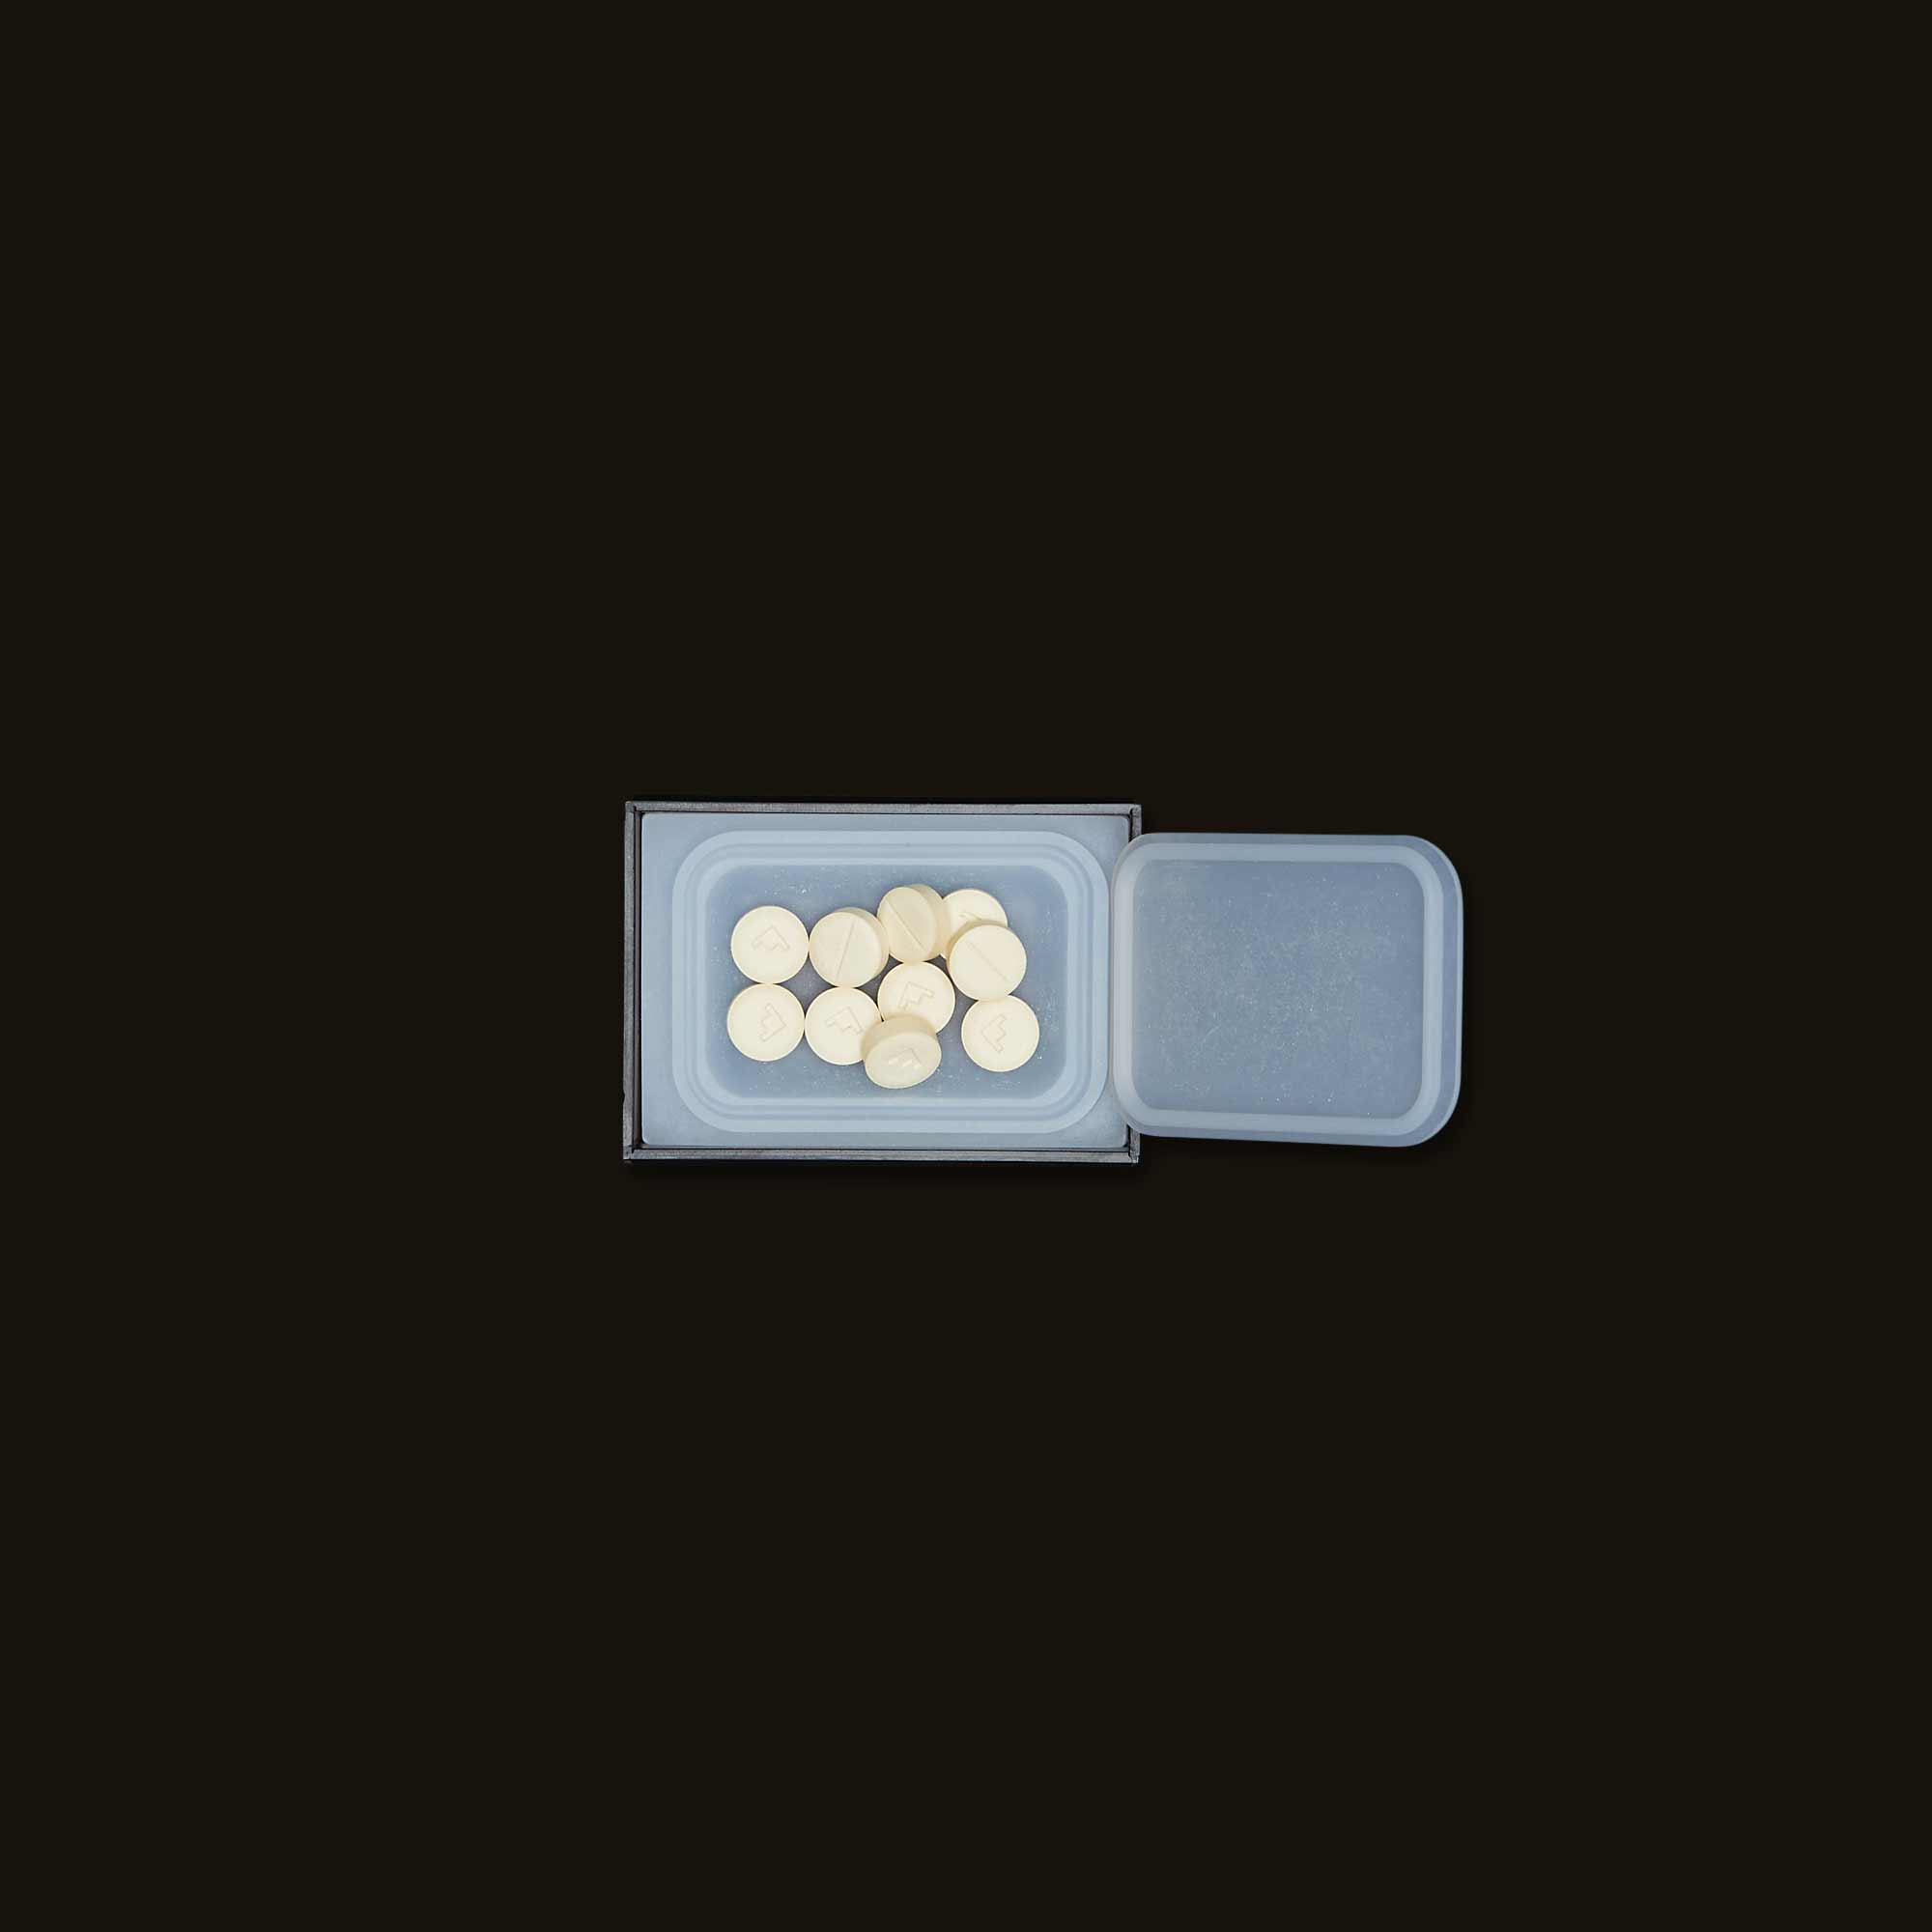 Container of pills